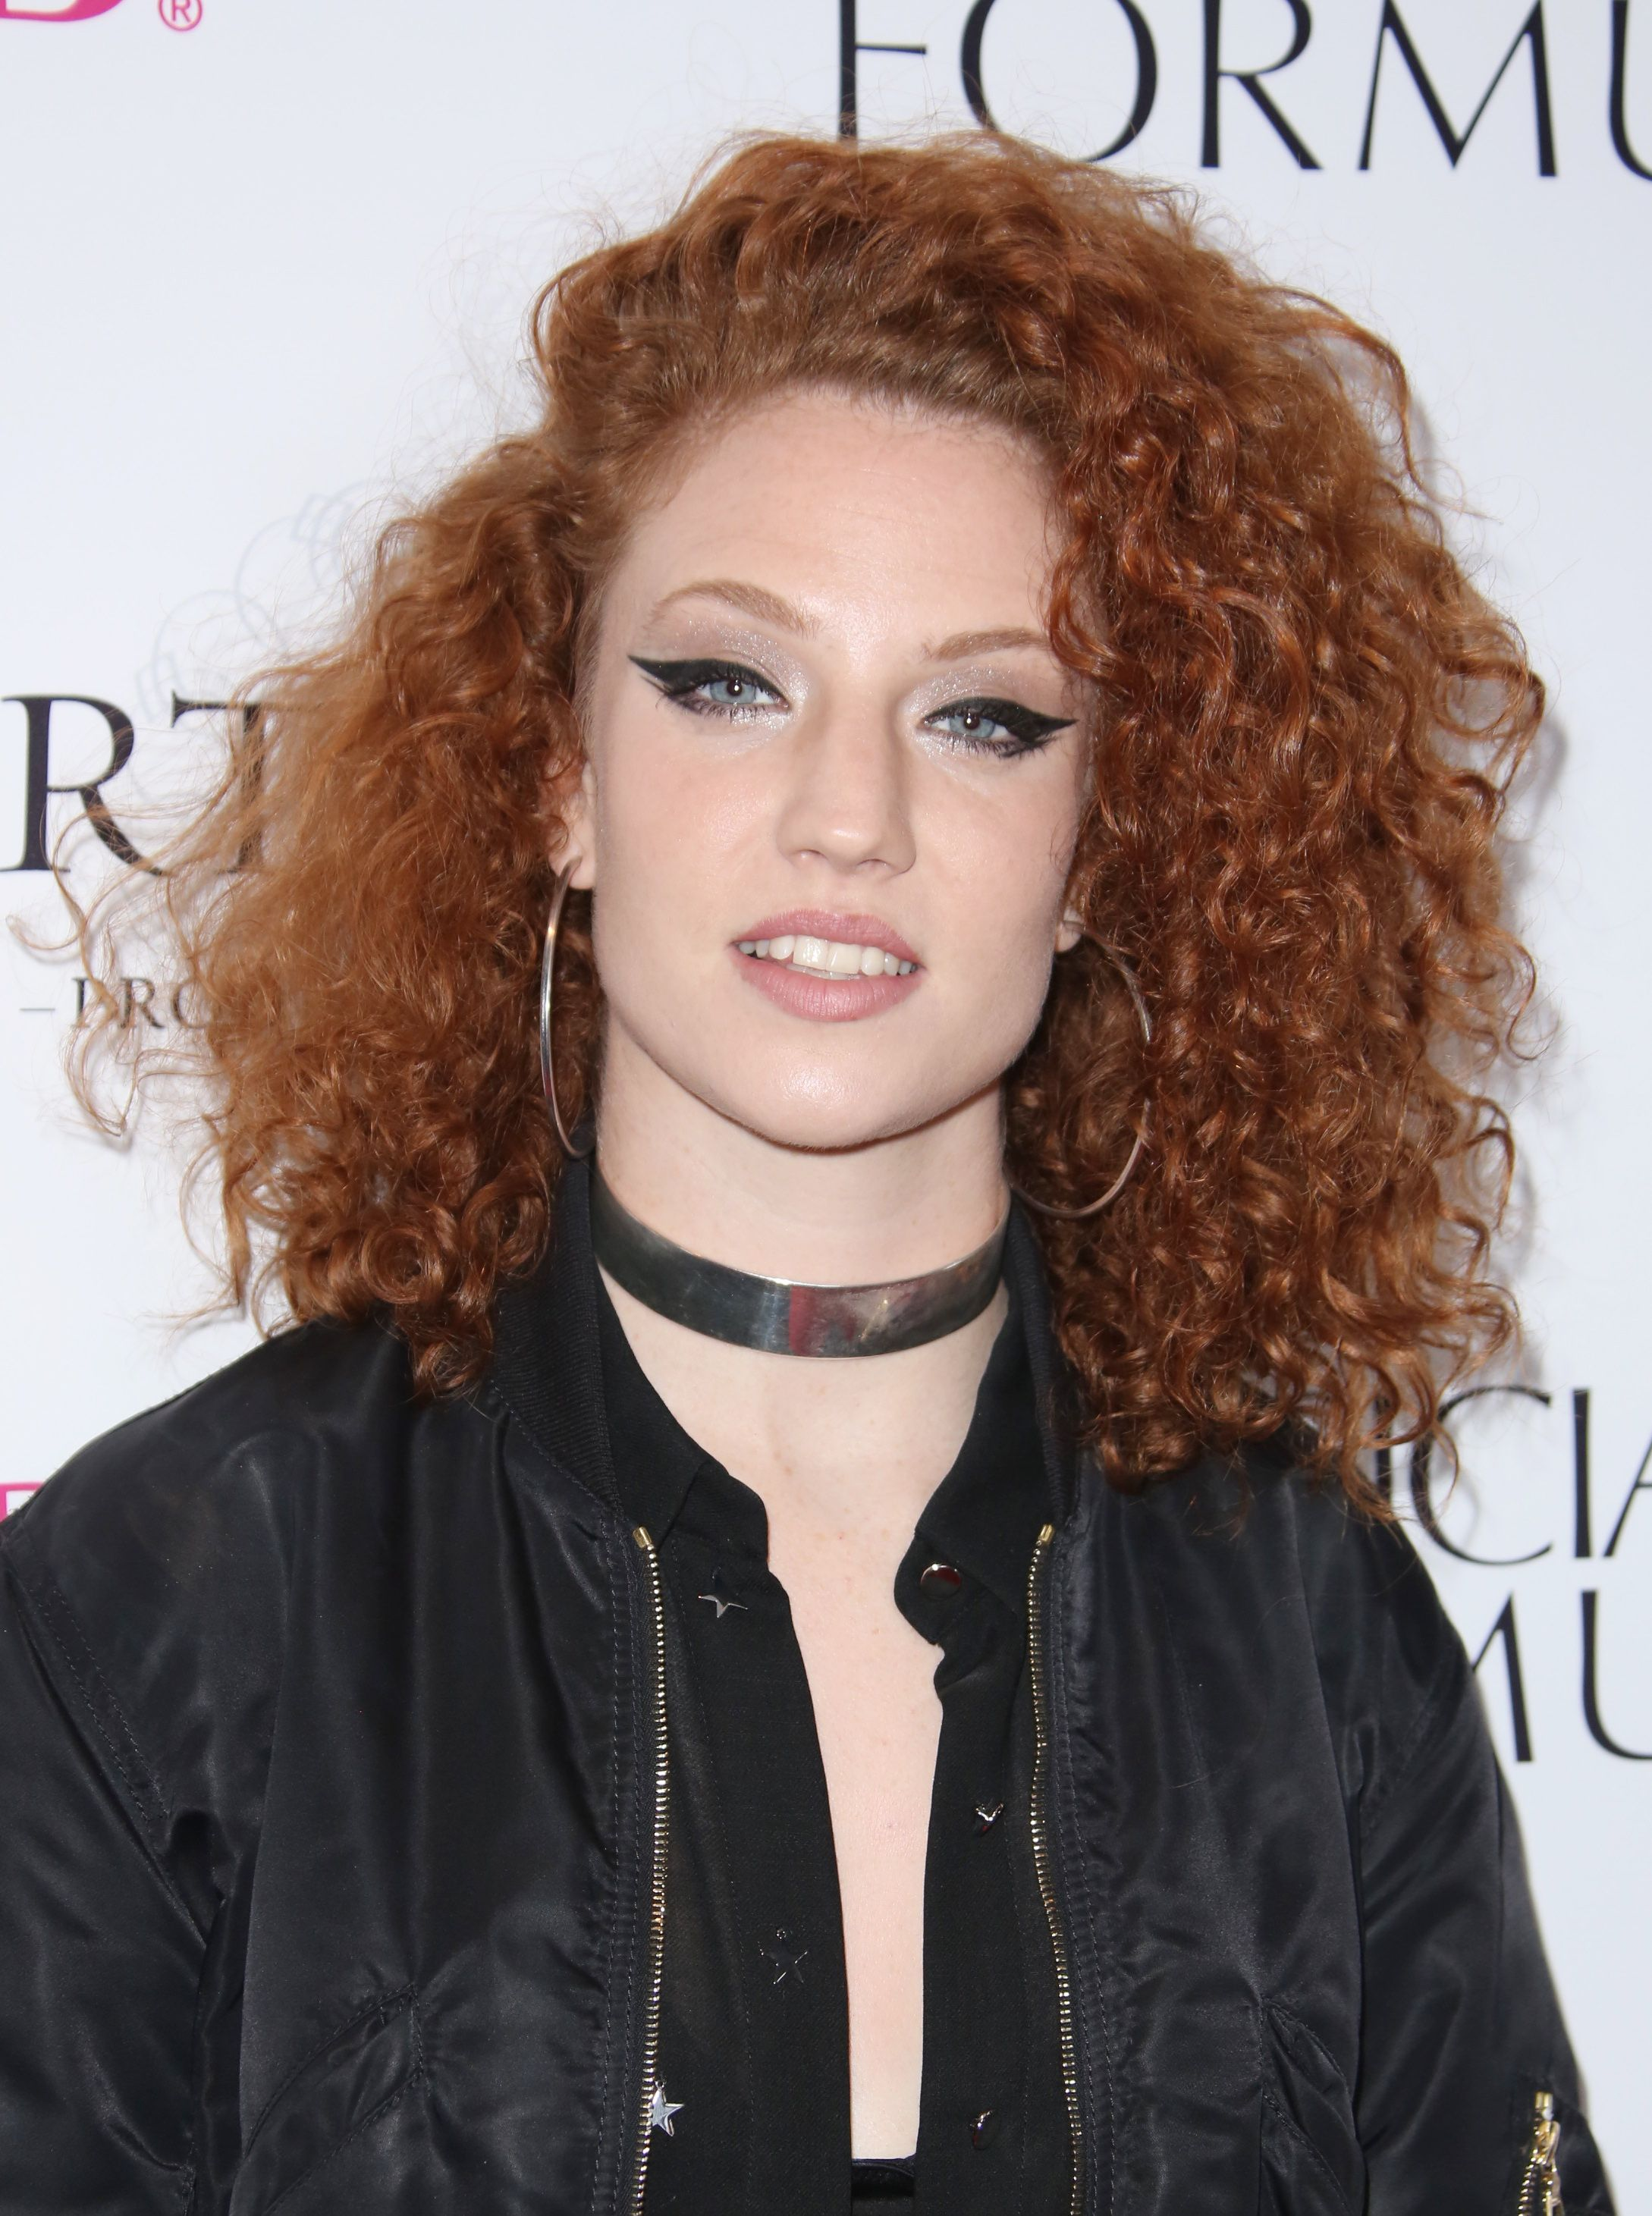 2017 hairstyles: All Things Hair - IMAGE - Jess Glynne curly red hair